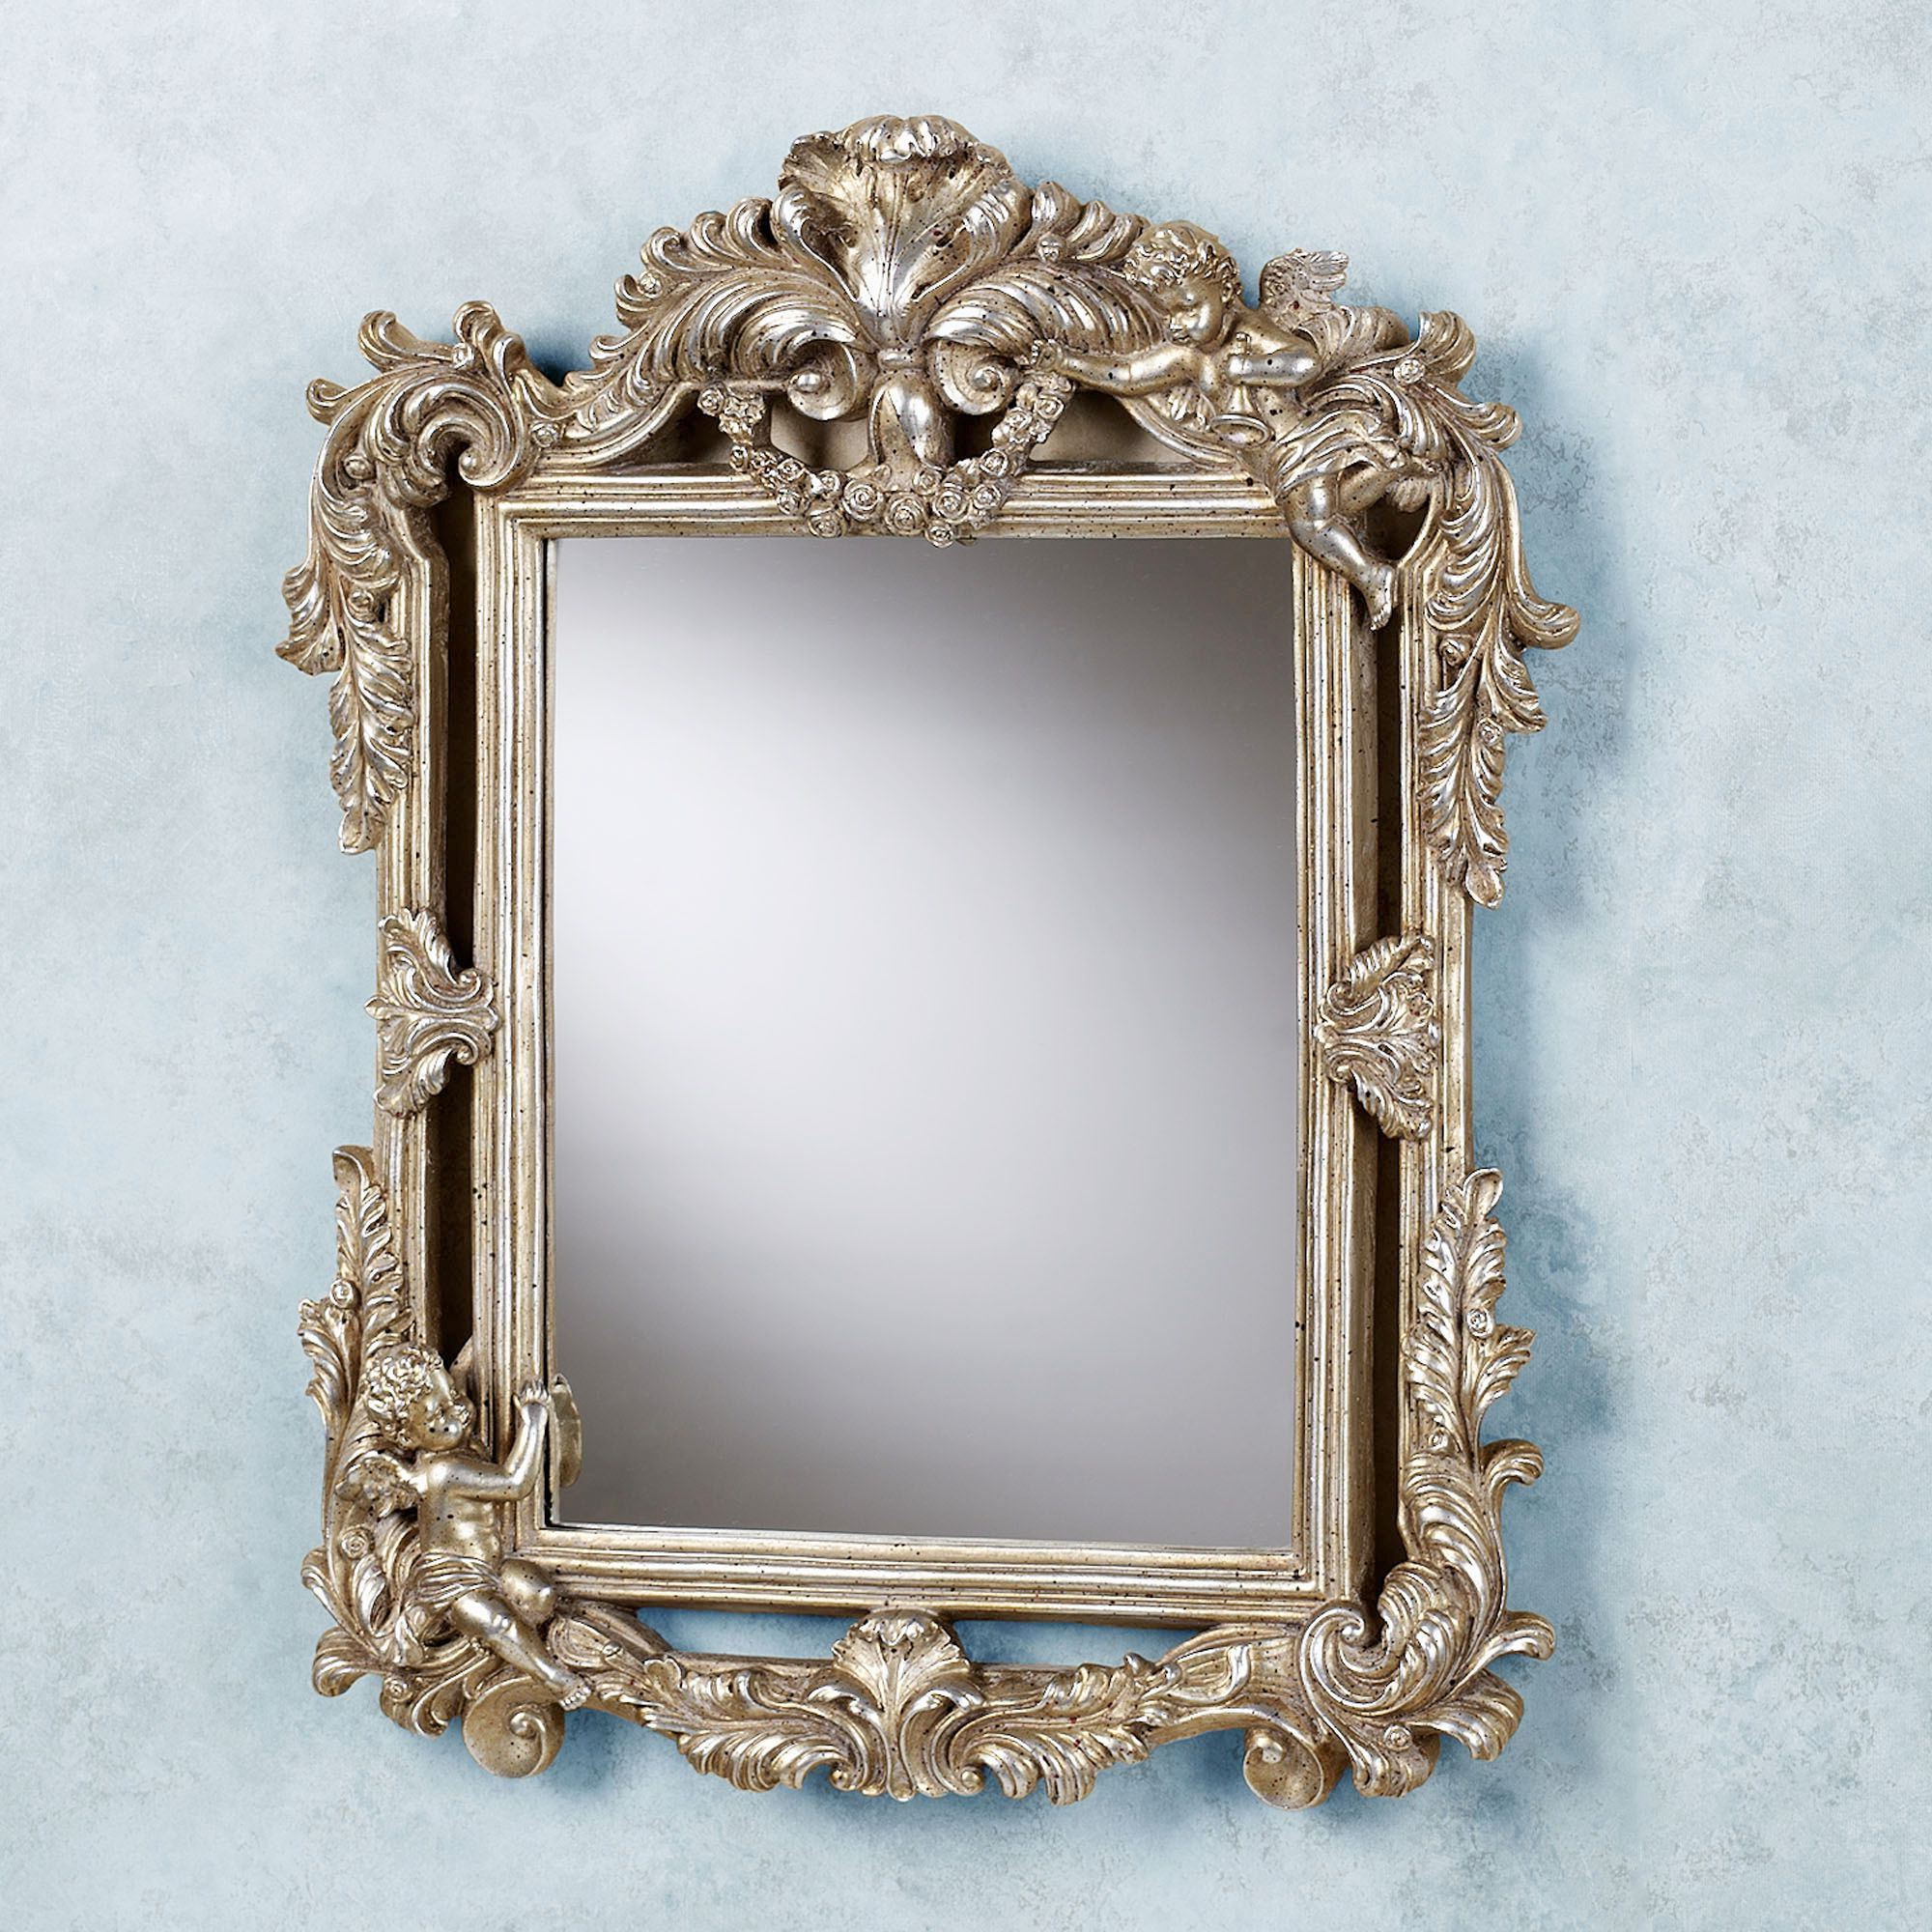 Preferred Accent Mirrors Regarding Cherub Double Framed Accent Wall Mirror (View 7 of 20)